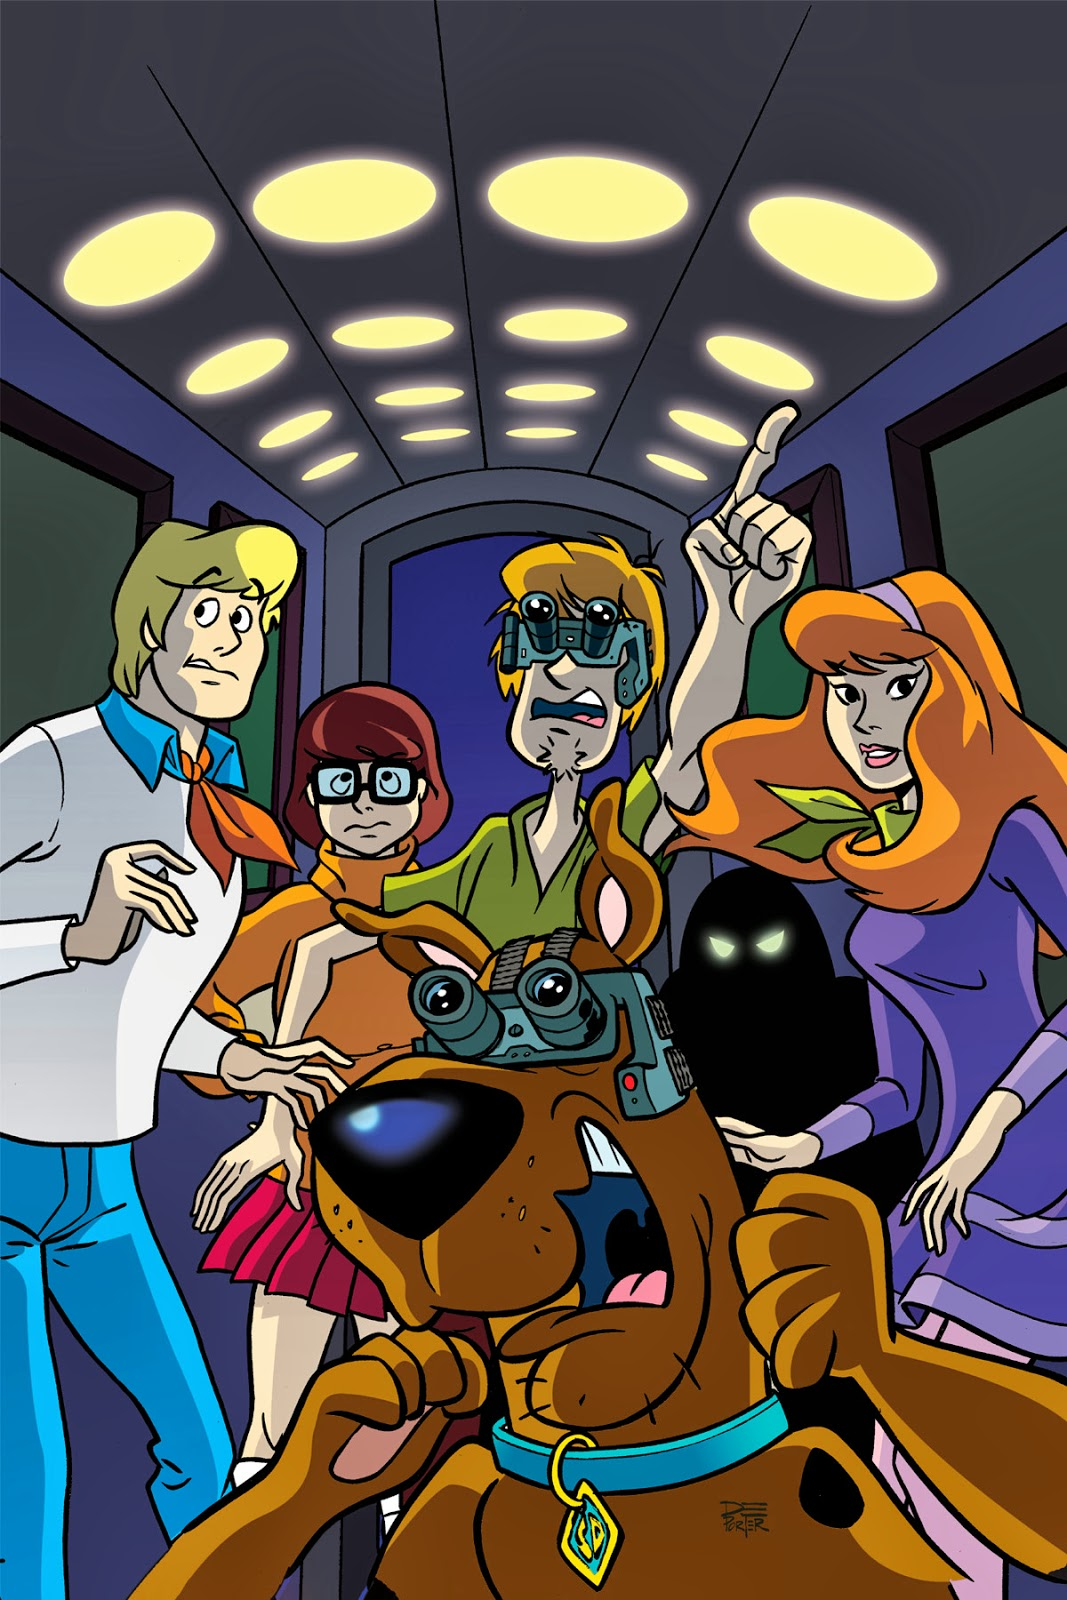 Iphone Cool Doo Wallpaper Scooby